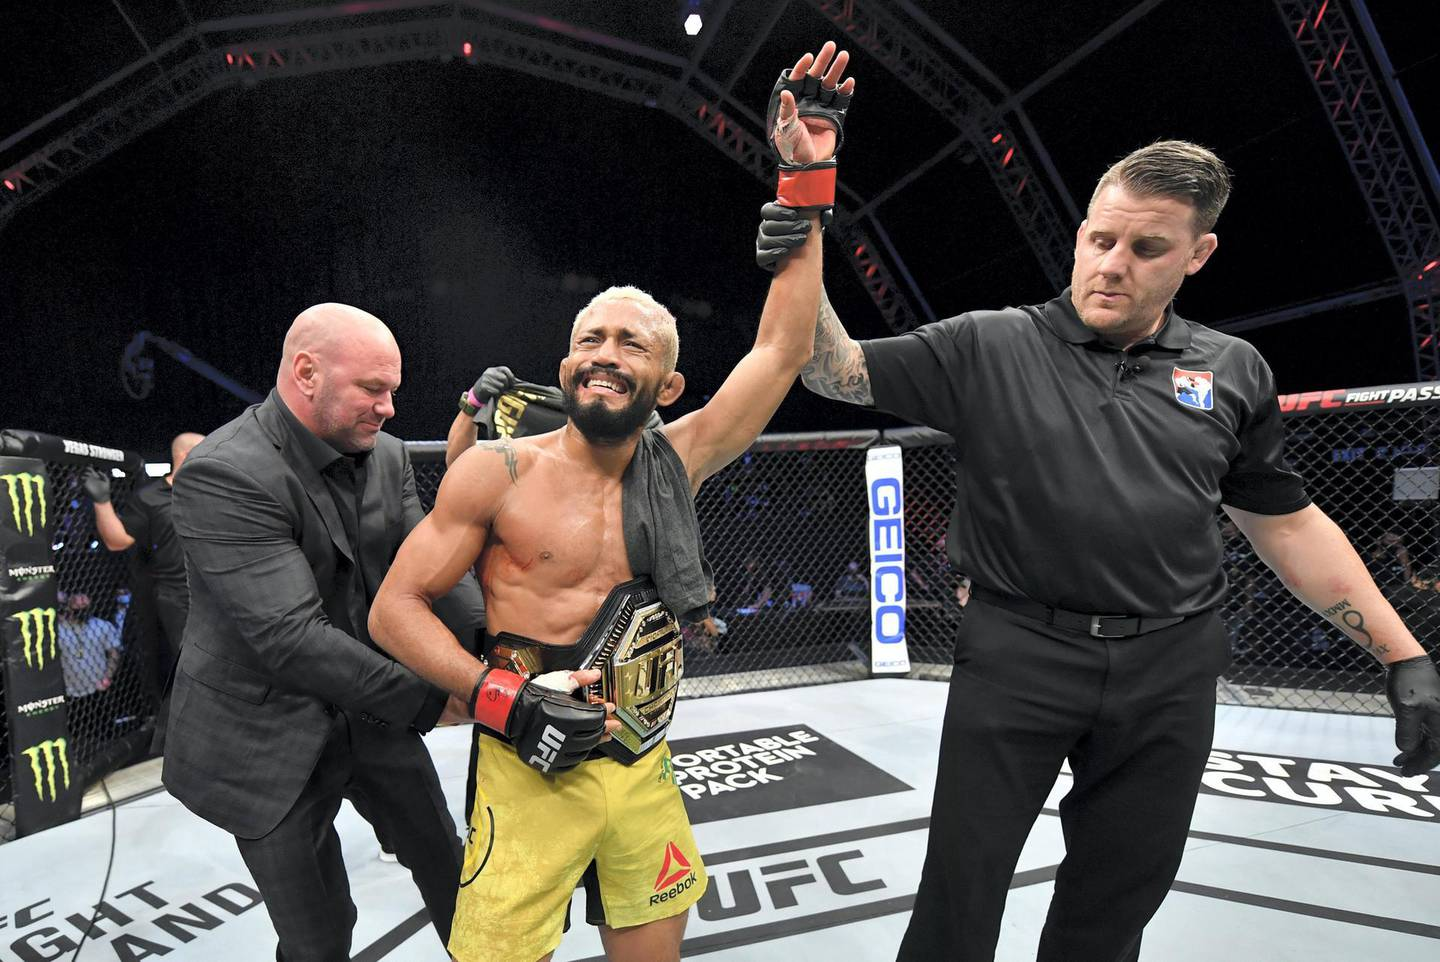 ABU DHABI, UNITED ARAB EMIRATES - JULY 19: Deiveson Figueiredo of Brazil celebrates after defeating Joseph Benavidez in their UFC flyweight championship bout during the UFC Fight Night event inside Flash Forum on UFC Fight Island on July 19, 2020 in Yas Island, Abu Dhabi, United Arab Emirates. (Photo by Jeff Bottari/Zuffa LLC via Getty Images) *** Local Caption *** ABU DHABI, UNITED ARAB EMIRATES - JULY 19: Deiveson Figueiredo of Brazil celebrates after defeating Joseph Benavidez in their UFC flyweight championship bout during the UFC Fight Night event inside Flash Forum on UFC Fight Island on July 19, 2020 in Yas Island, Abu Dhabi, United Arab Emirates. (Photo by Jeff Bottari/Zuffa LLC via Getty Images)